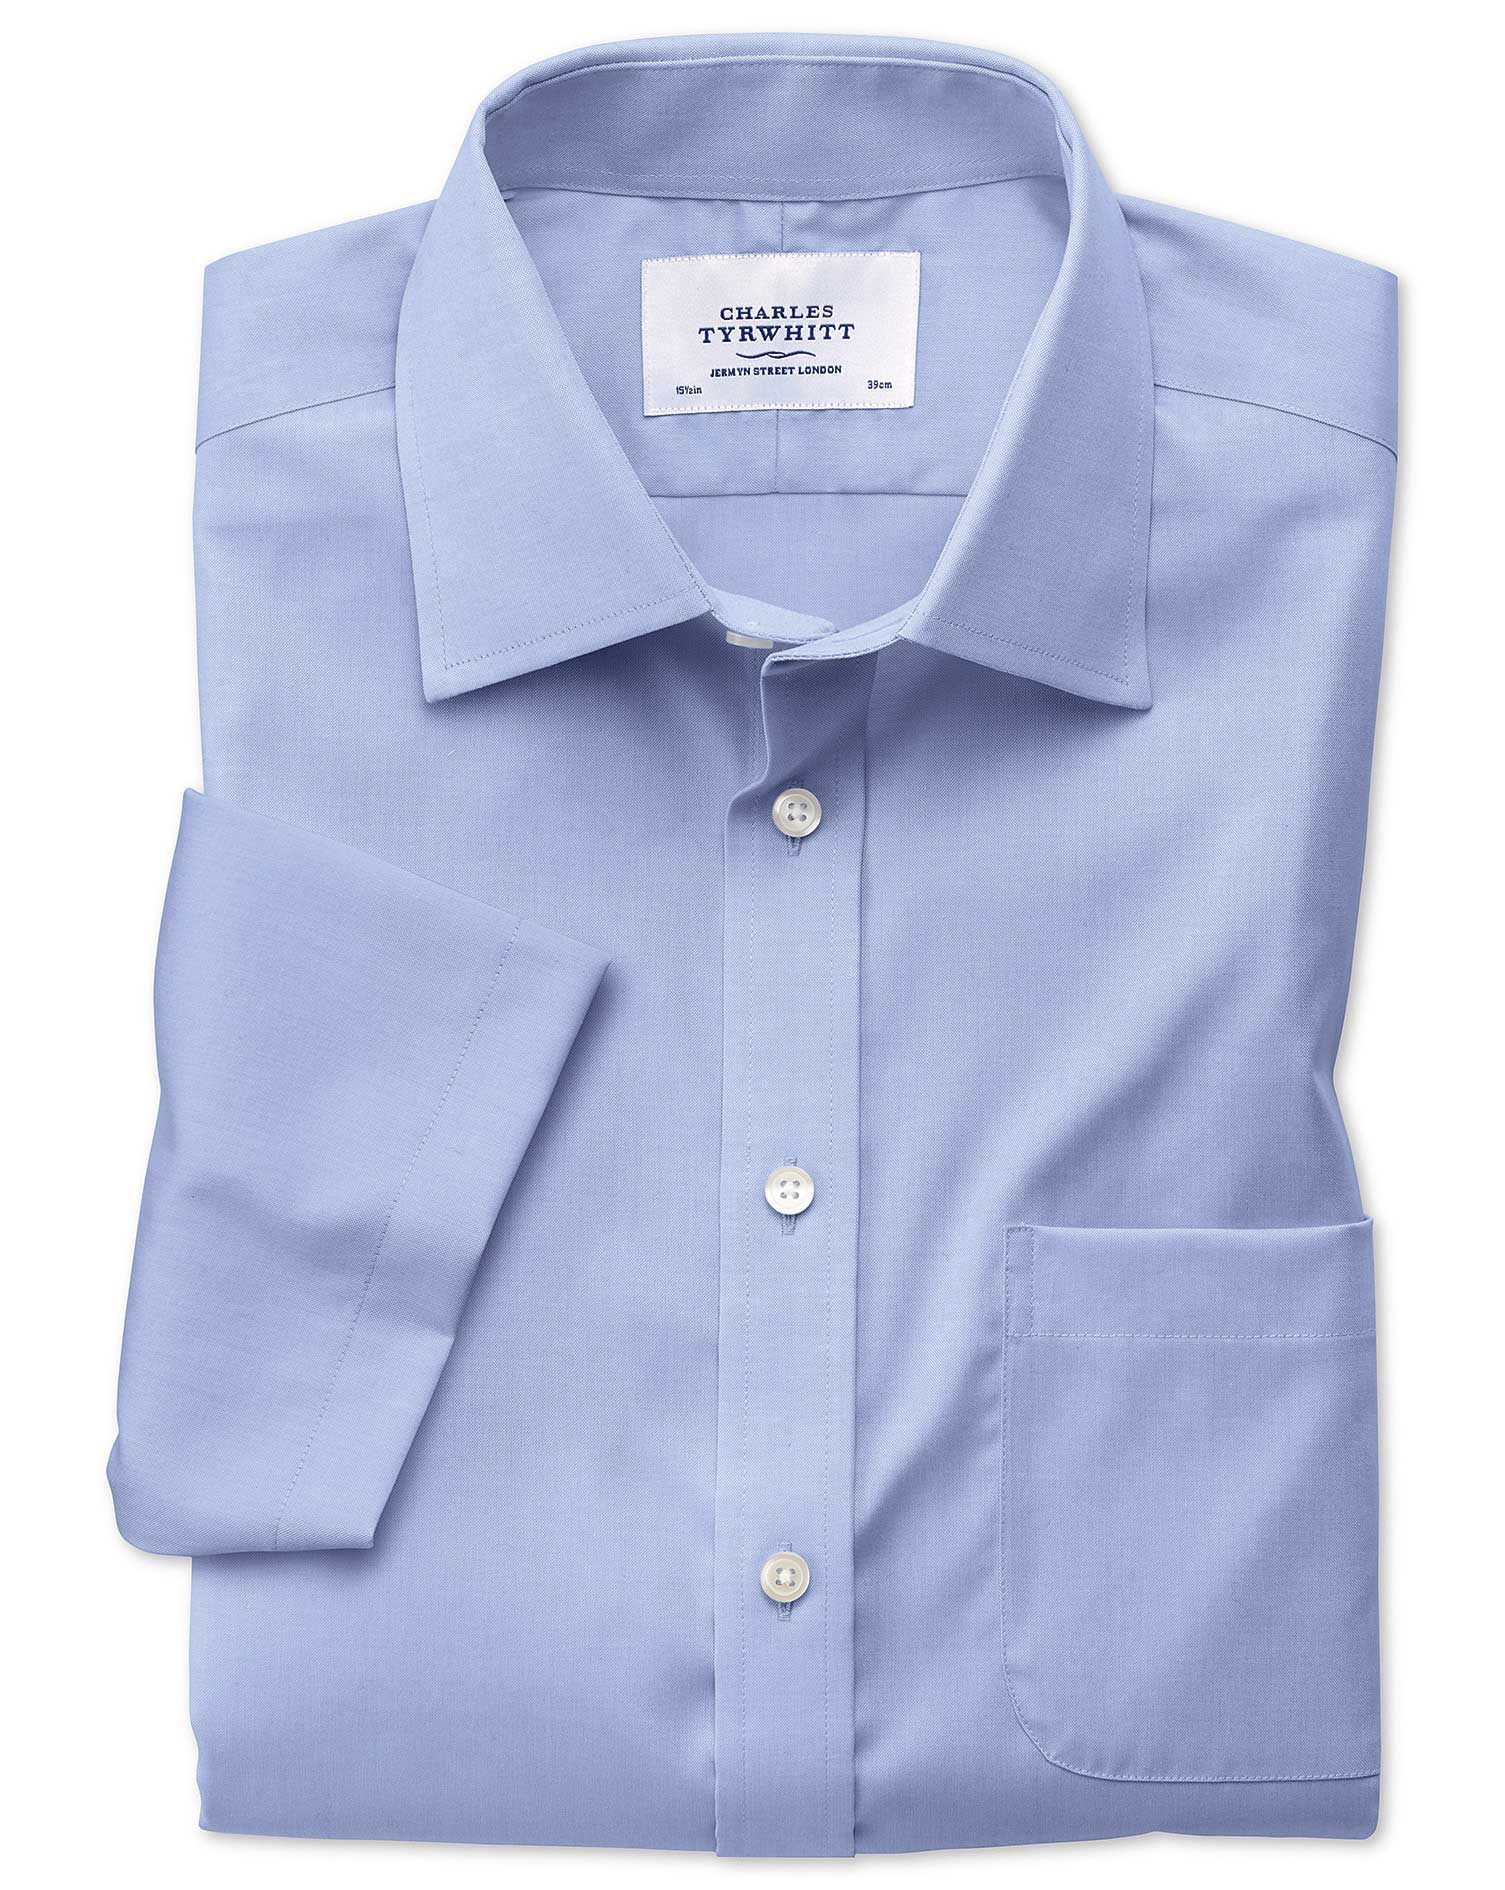 Classic Fit Non-Iron Pinpoint Short Sleeve Sky Blue Cotton Formal Shirt Size 20/Short by Charles Tyr